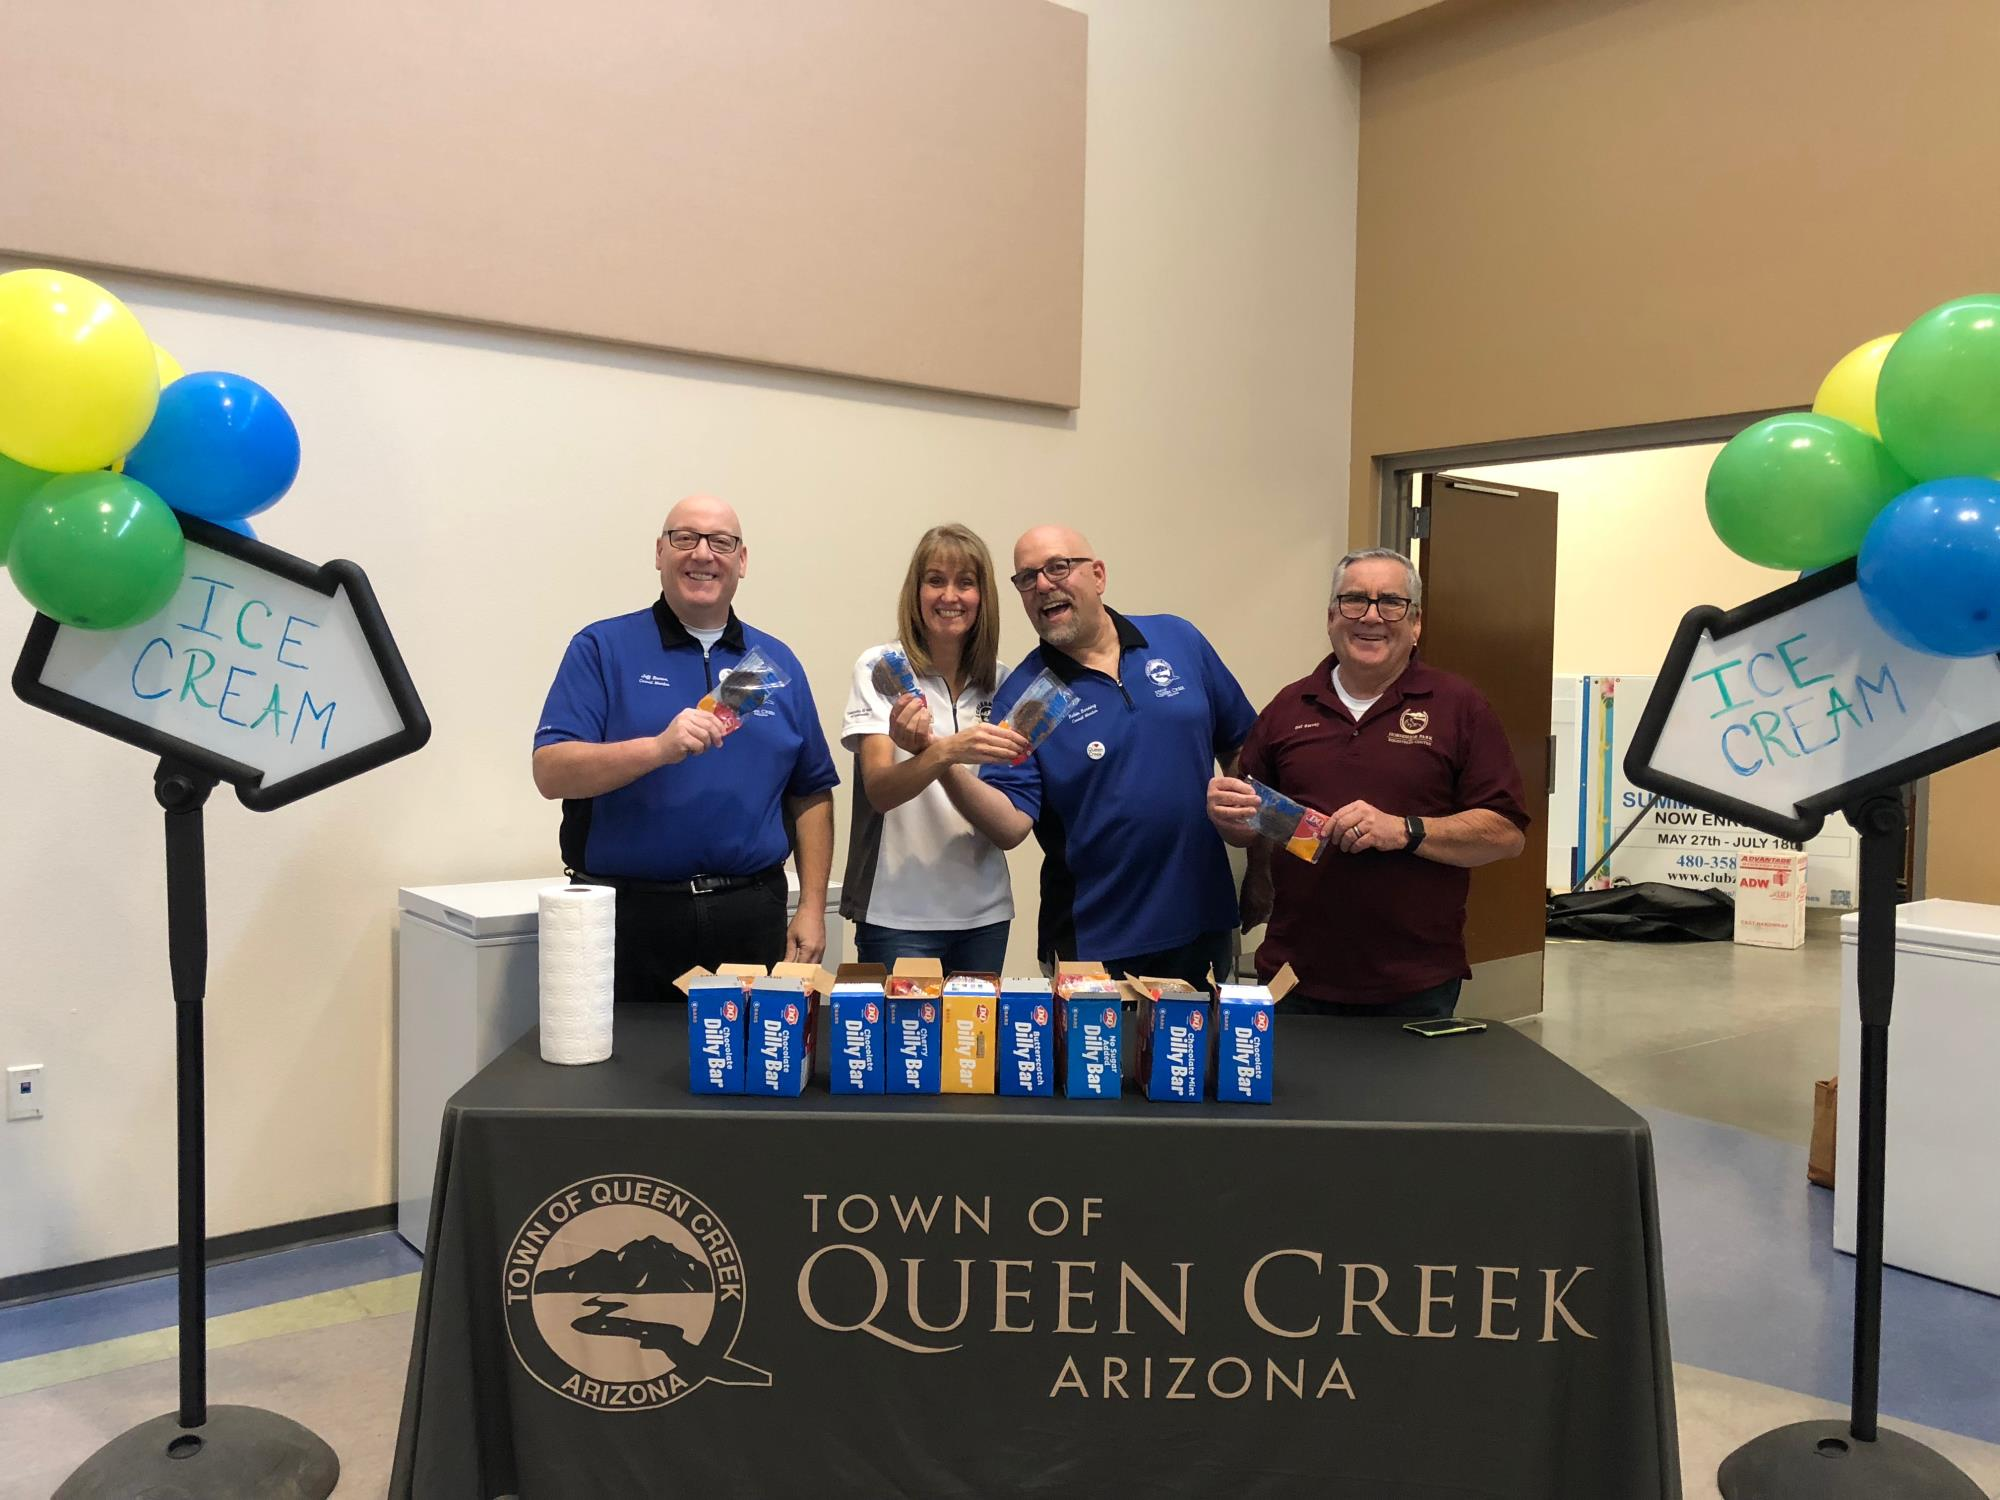 Mayor Barney and Council Members Benning, Brown, and Oliphant at the Ice Cream Social on July 21